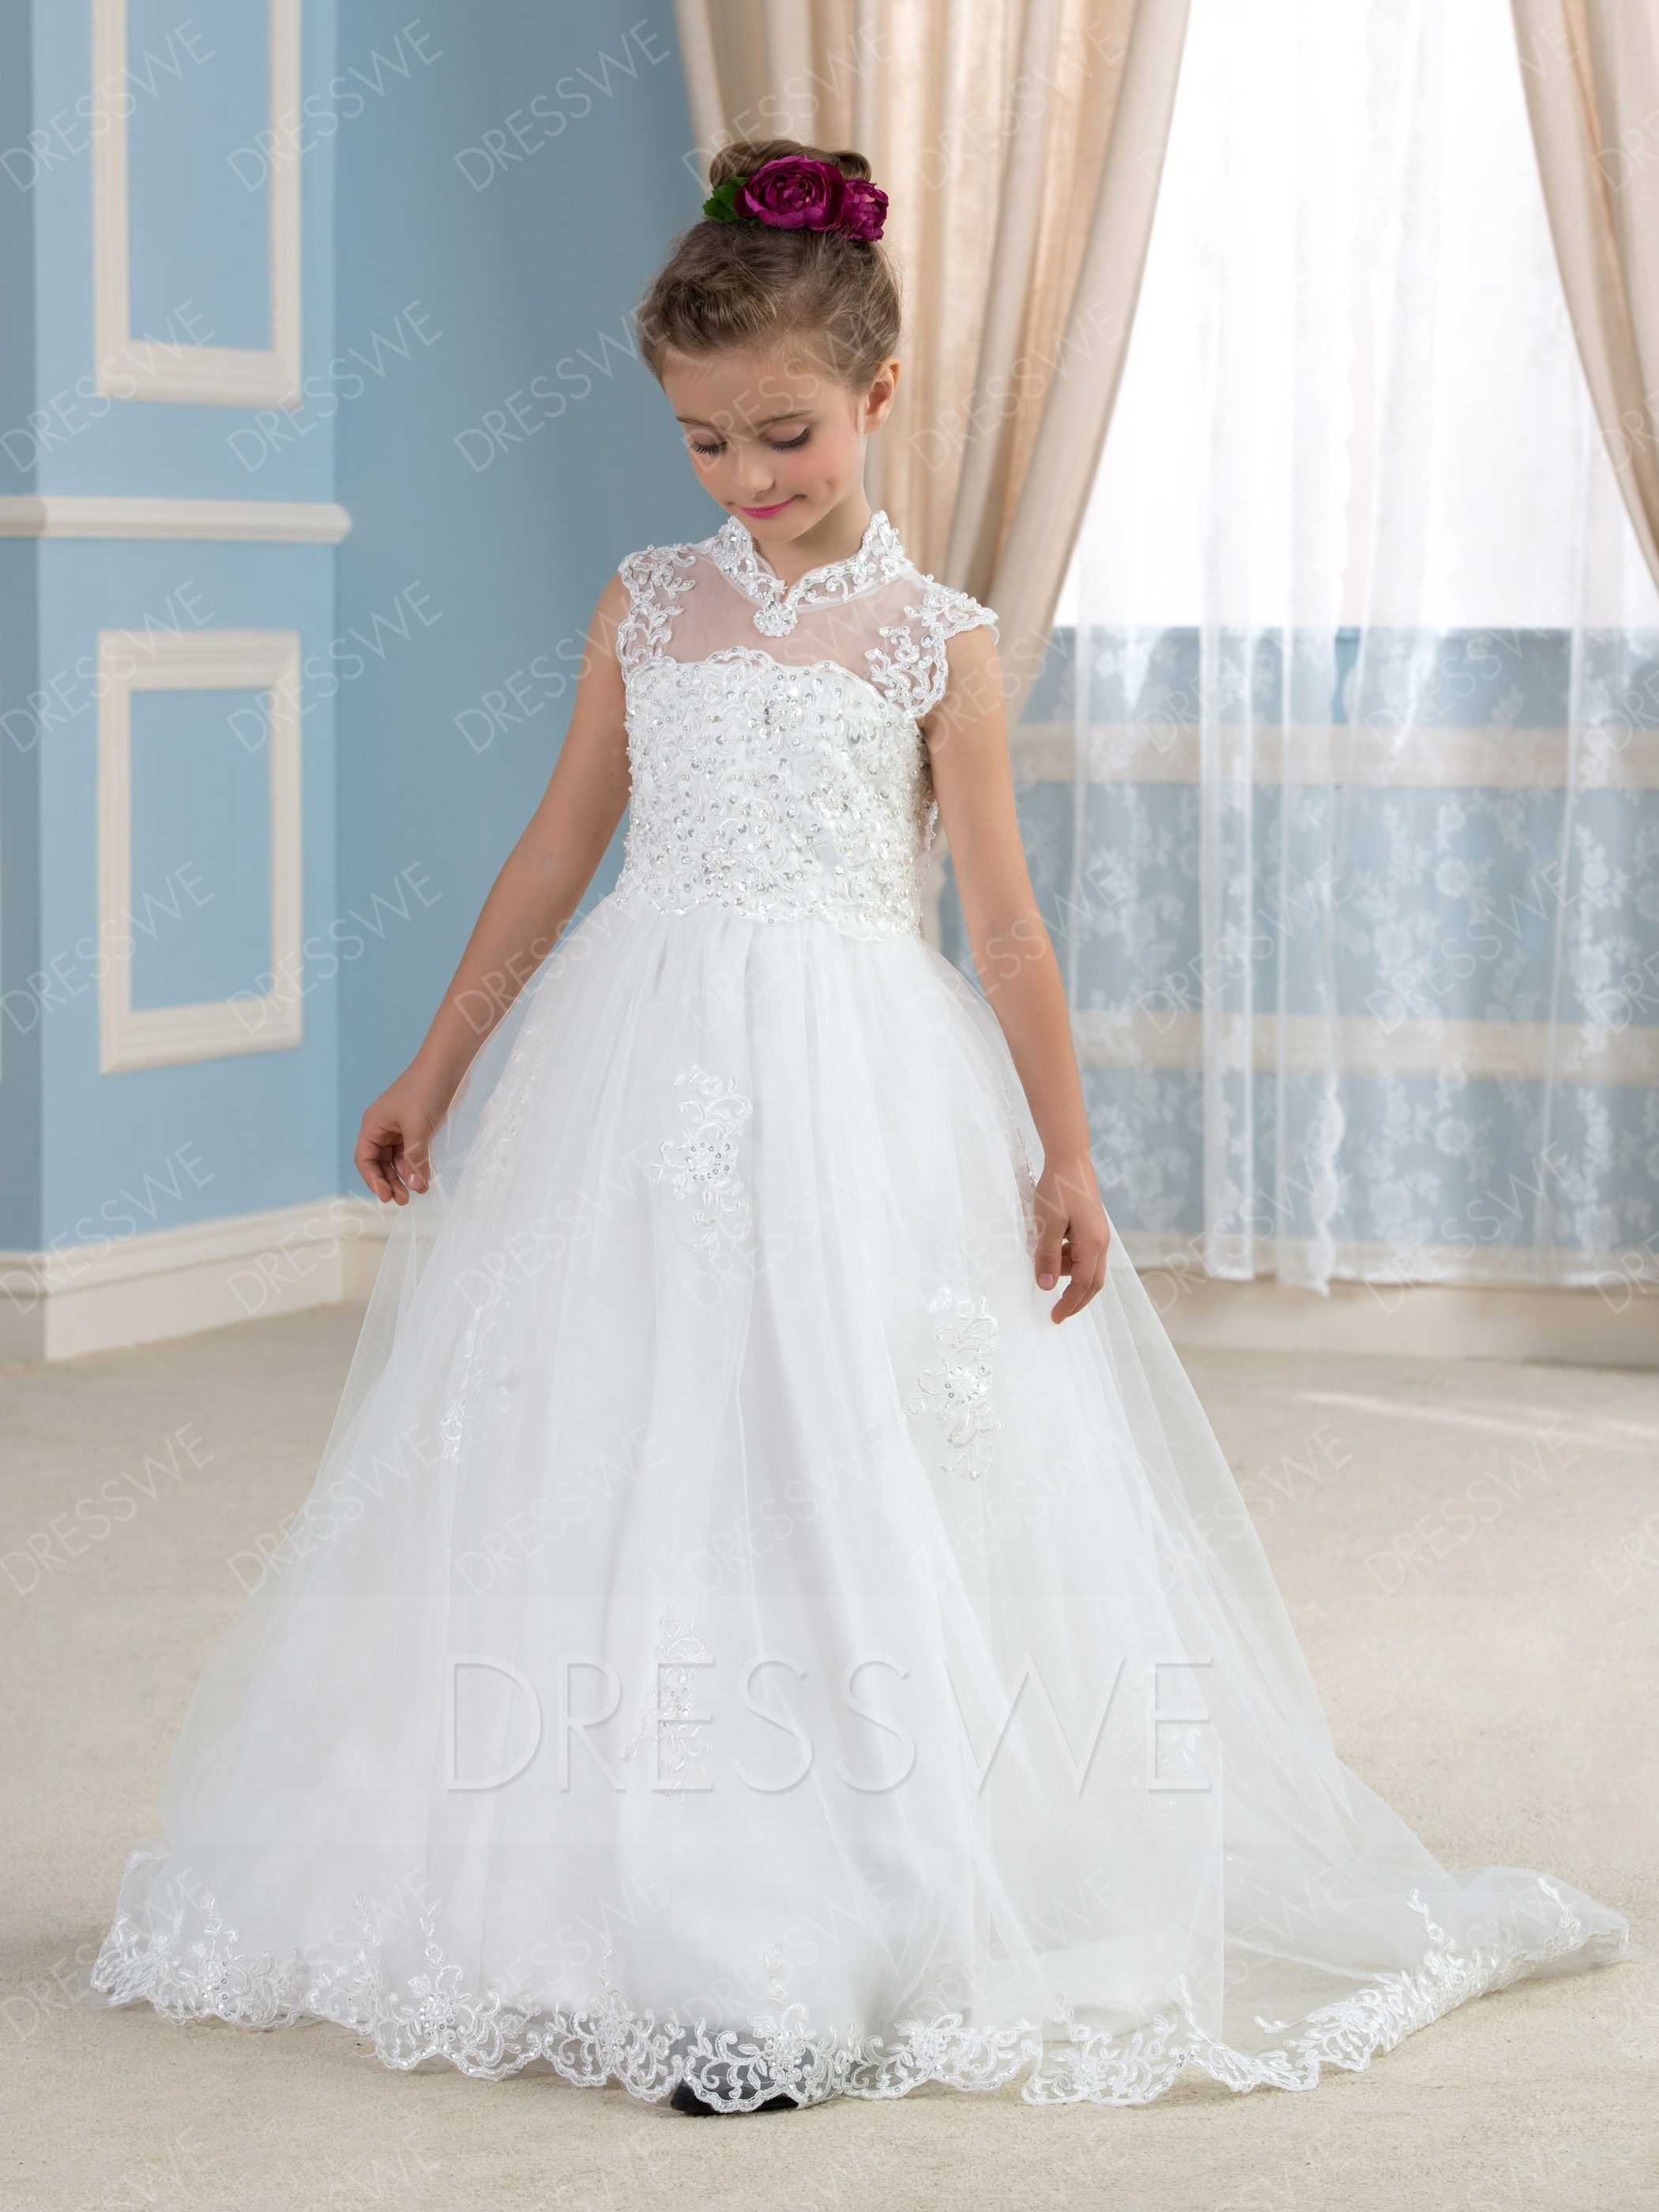 5803b6a8184 Buy Vintage Jewel Neck Appliques Beading Floor-Length Flower Girl Dress  Online